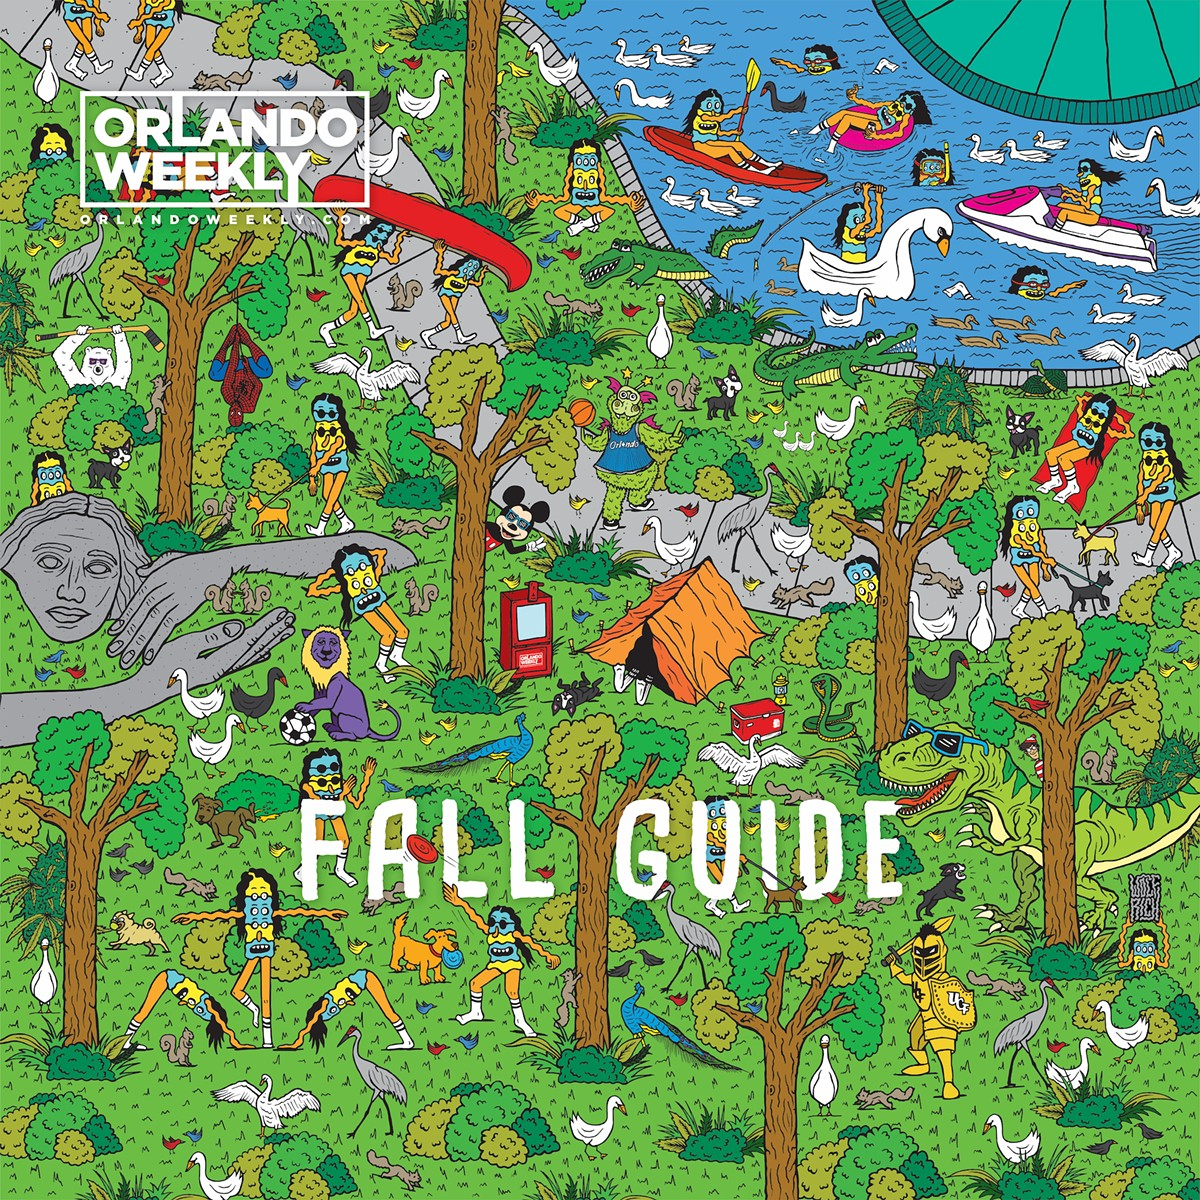 fallguide_cover_artwork_full_web.jpg